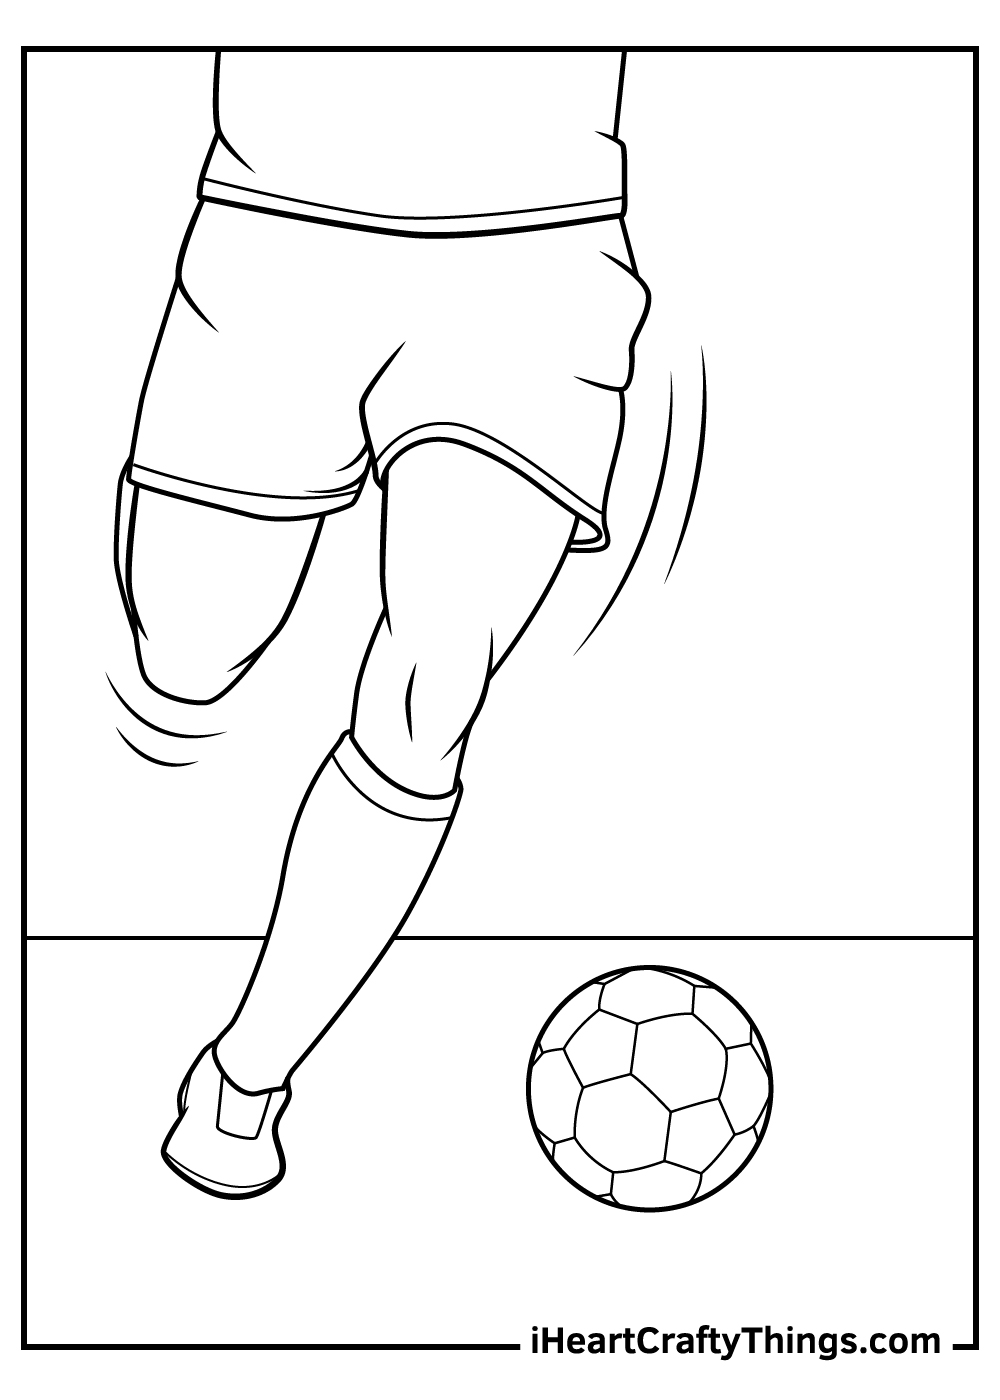 soccer coloring pages for boys to print out